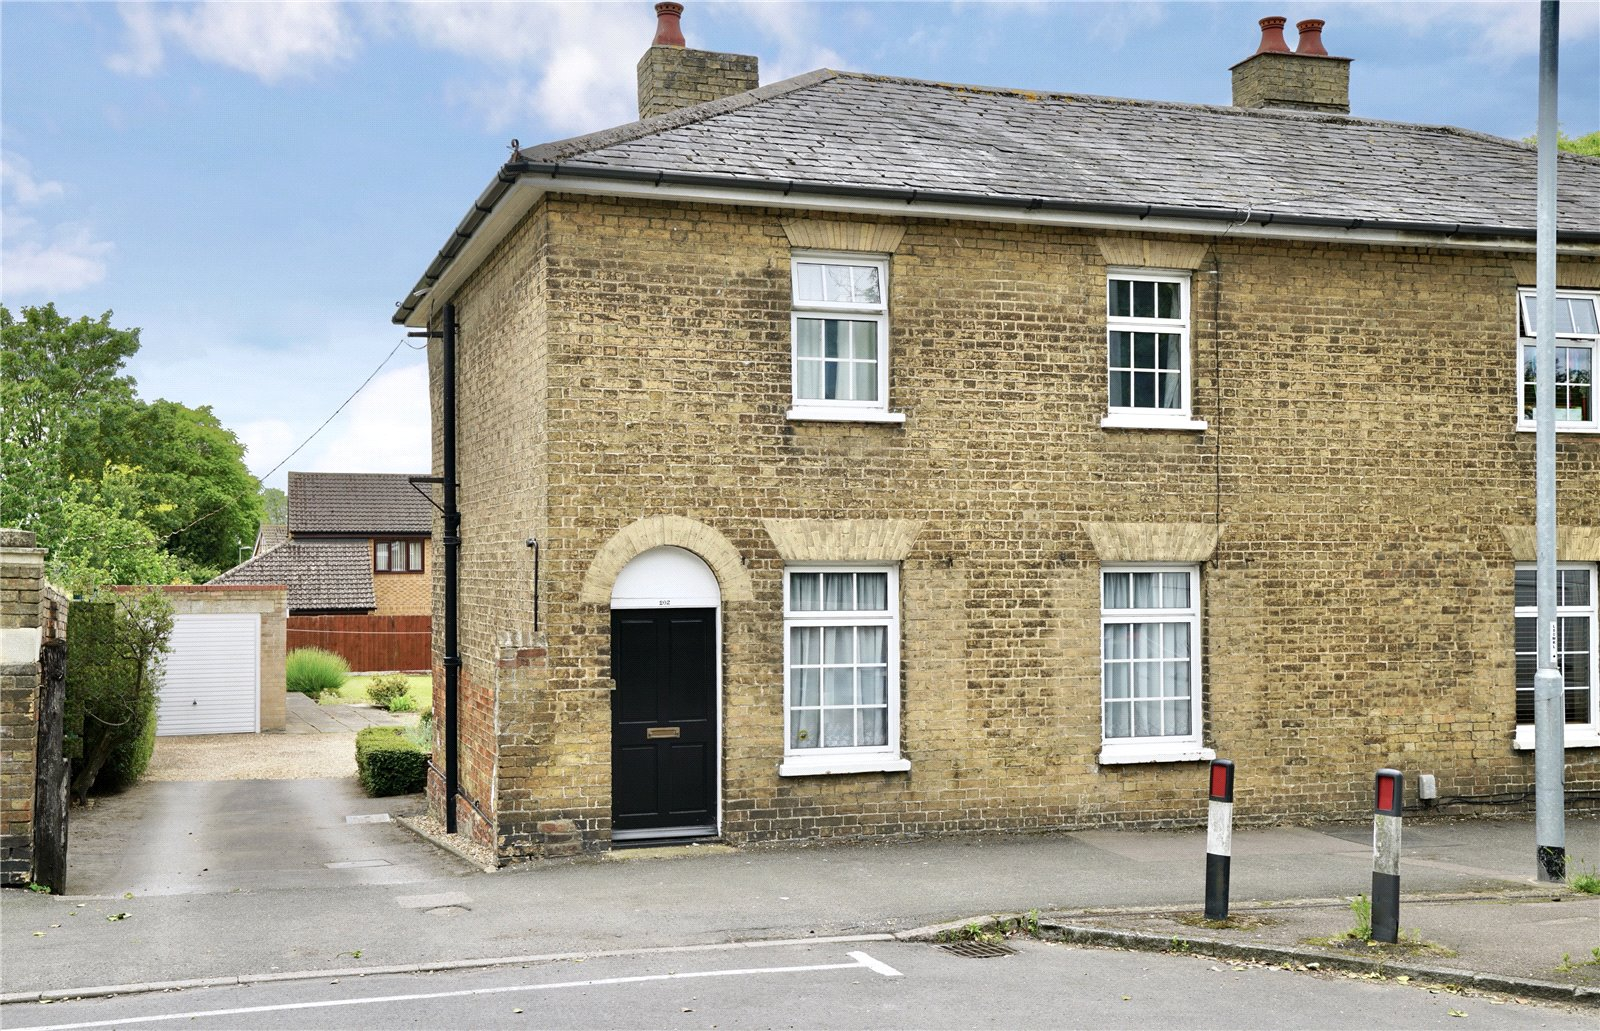 3 bed house for sale in Eaton Socon, PE19